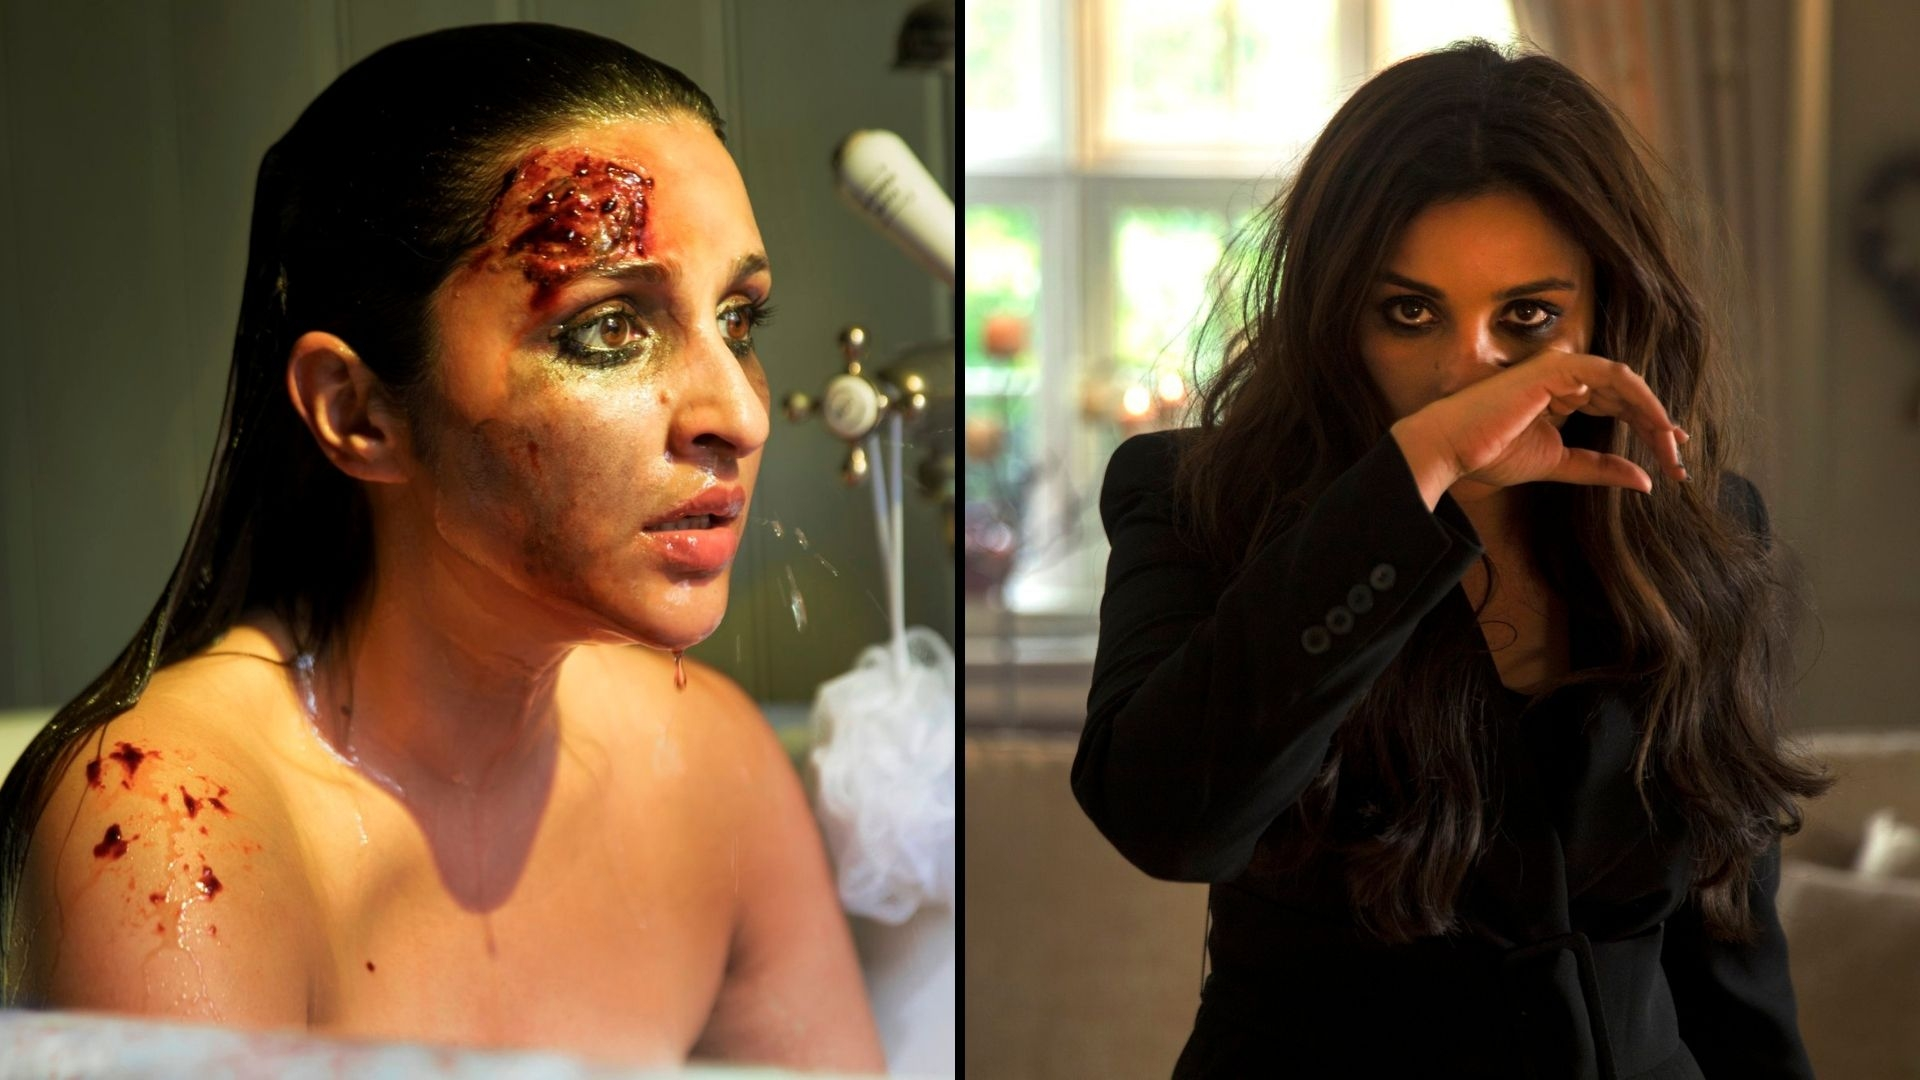 'Girl on the Train' First Look: Parineeti Is Fearful and Wounded